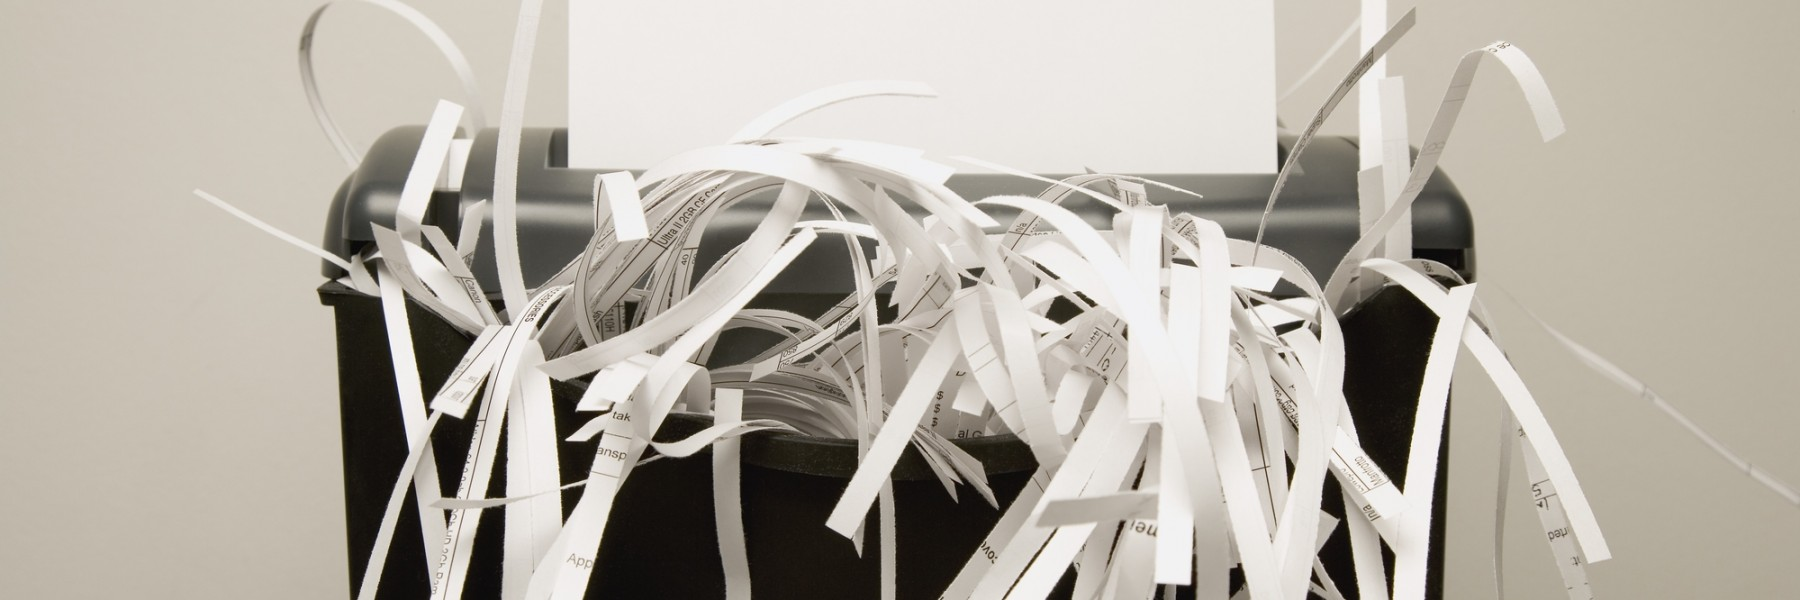 How To Shred Wet Documents